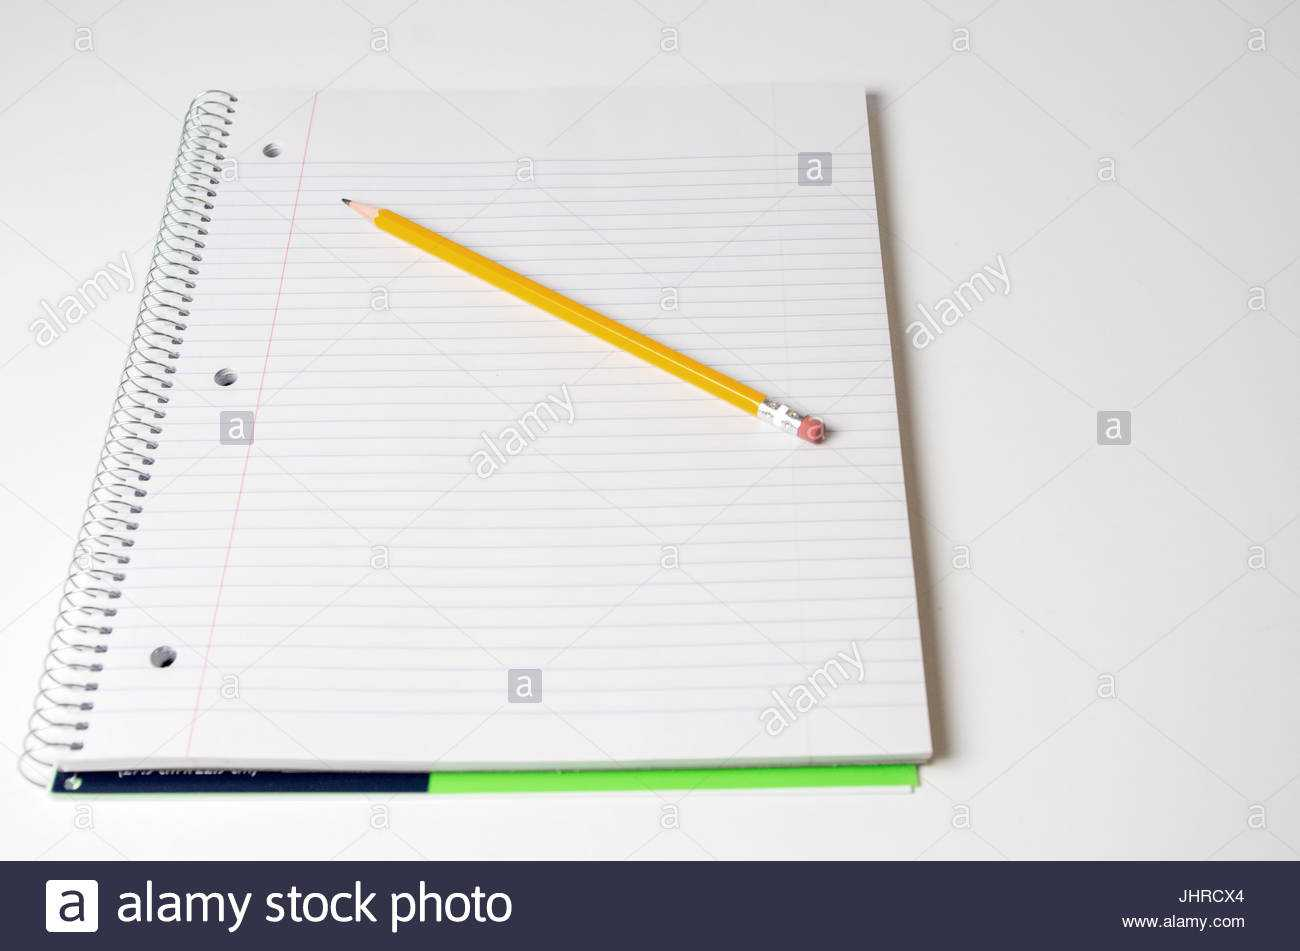 College Ruled Paper Stock Photos & College Ruled Paper Stock With Regard To College Ruled Lined Paper Template Word 2007